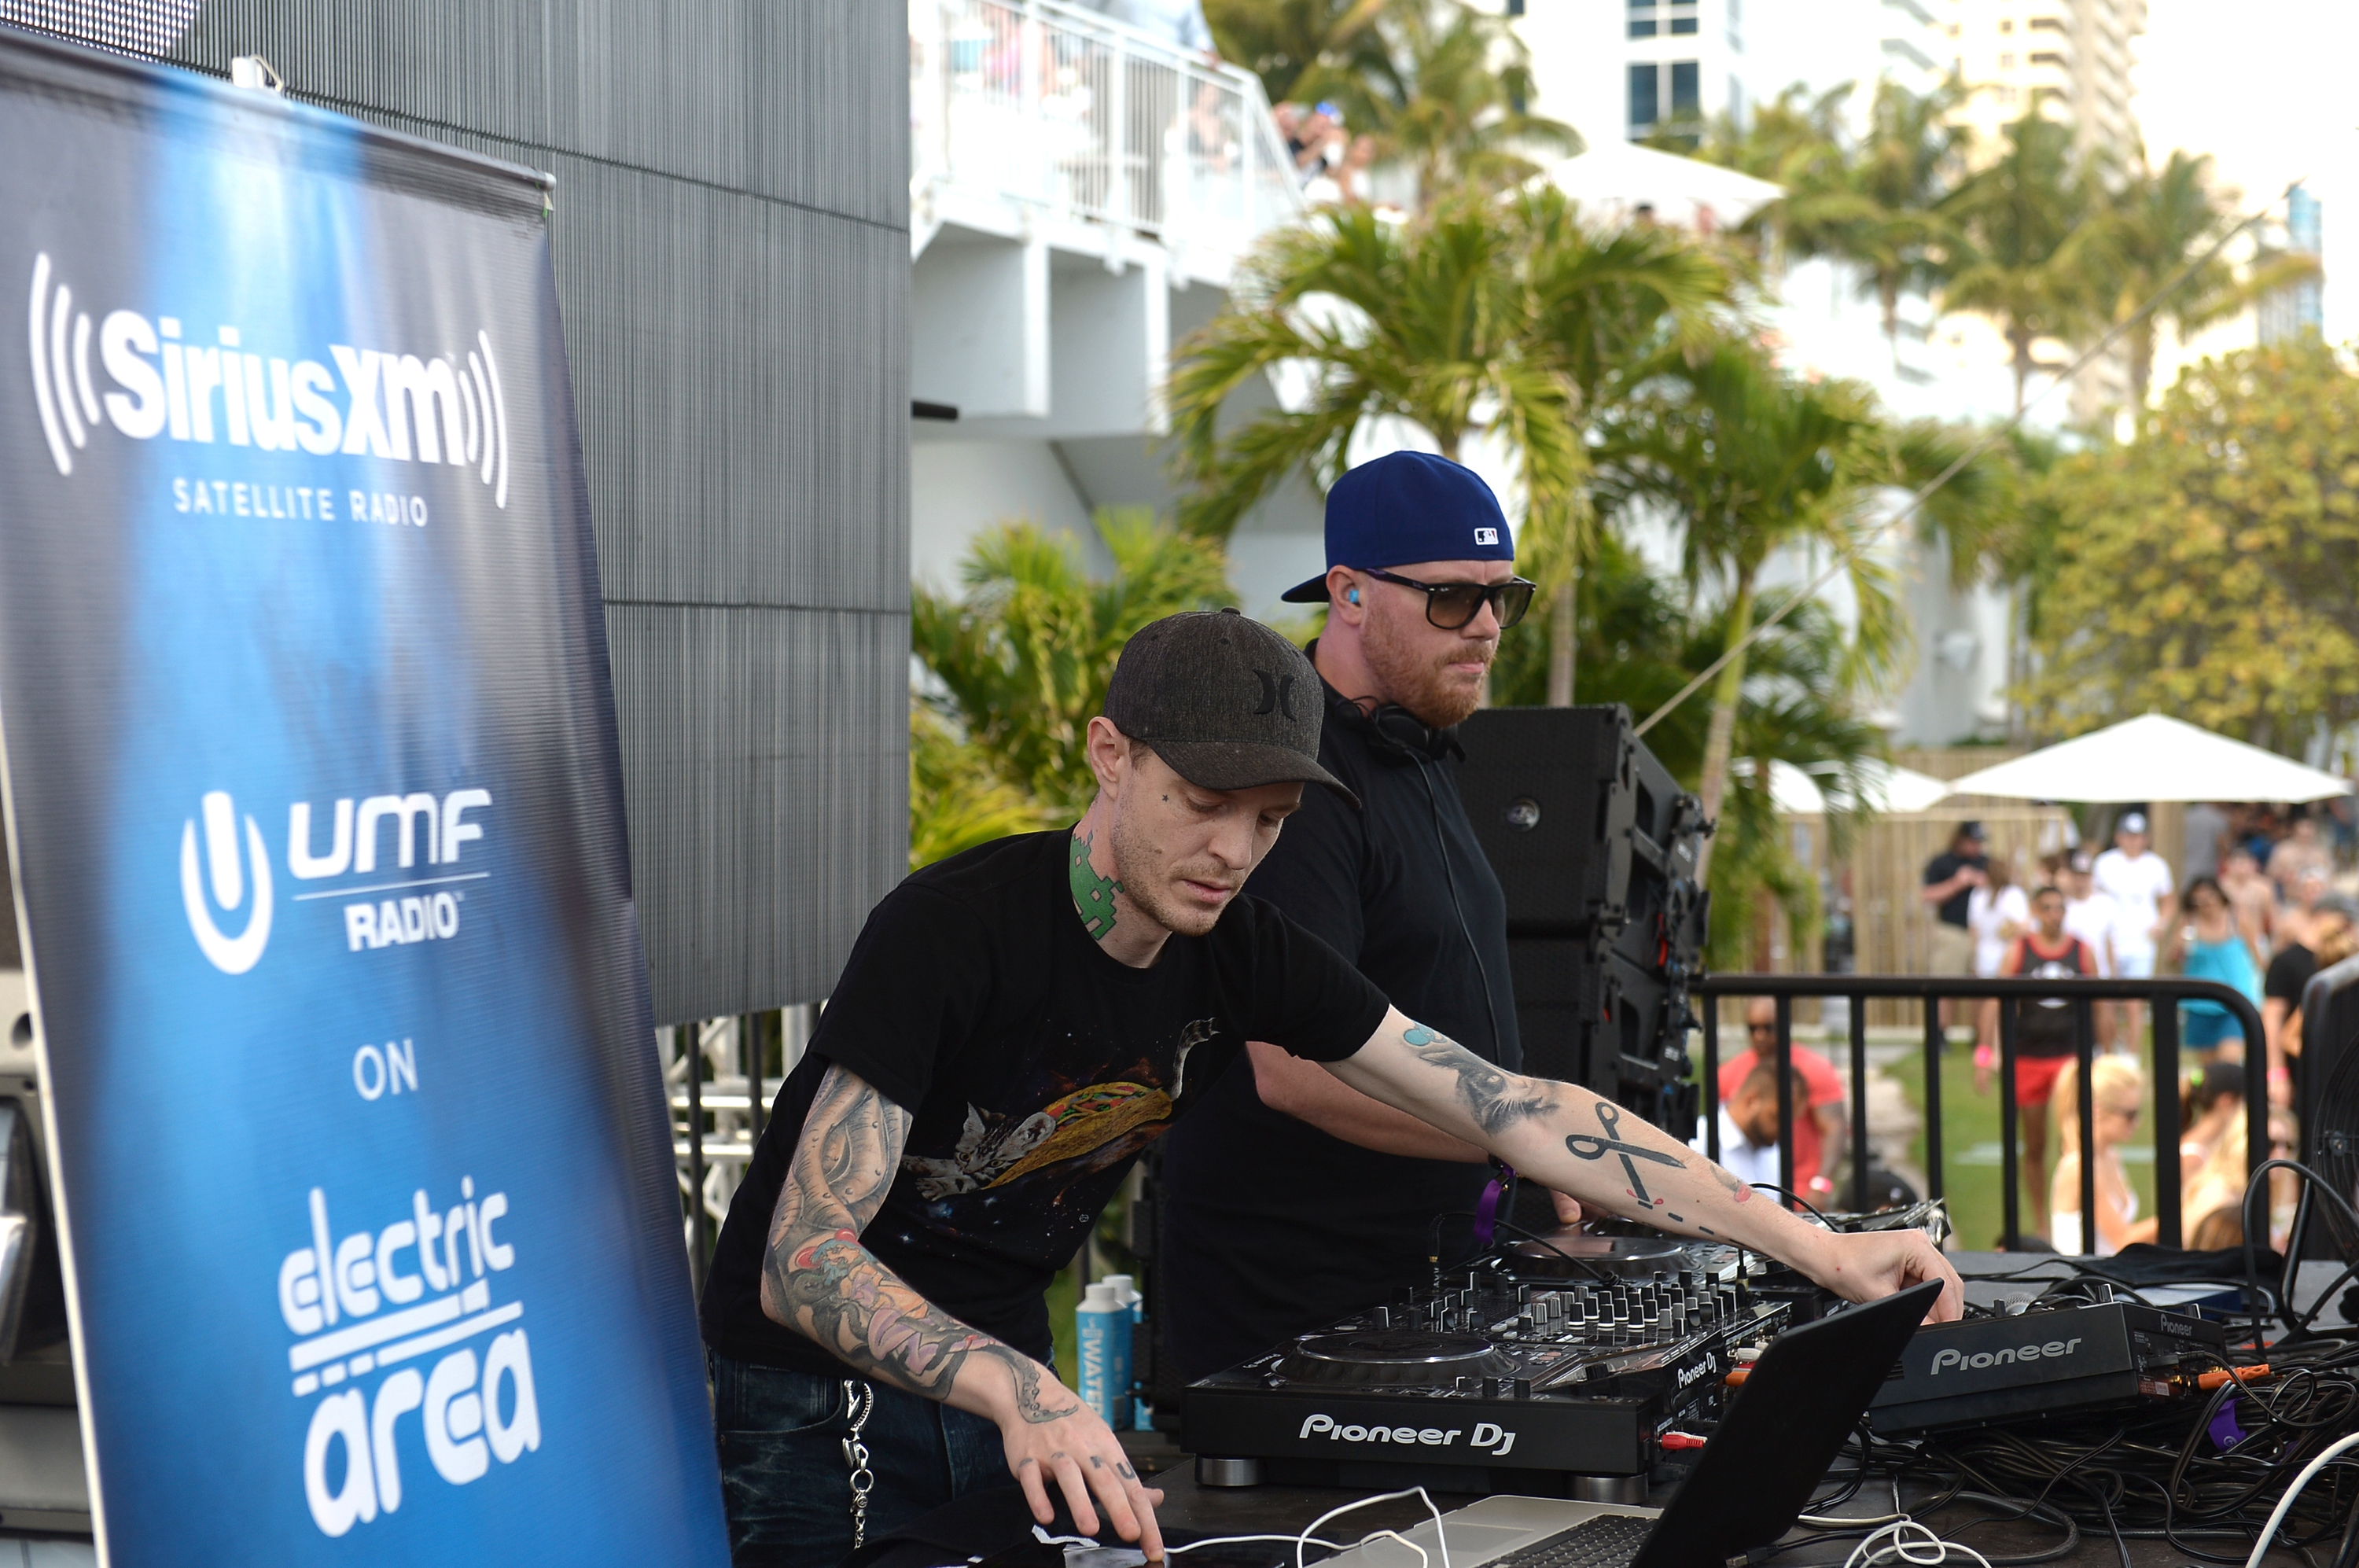 """""""MIAMI, FLORIDA - MARCH 18: Prydz & Deadmau5 performs at SiriusXM's 'UMF Radio' Broadcast Live From The SiriusXM Music Lounge at 1 Hotel South Beach at 1 Hotel South Beach on March 18, 2016 in Miami, Florida. (Photo by Gustavo Caballero/Getty Images for SiriusXM)"""""""